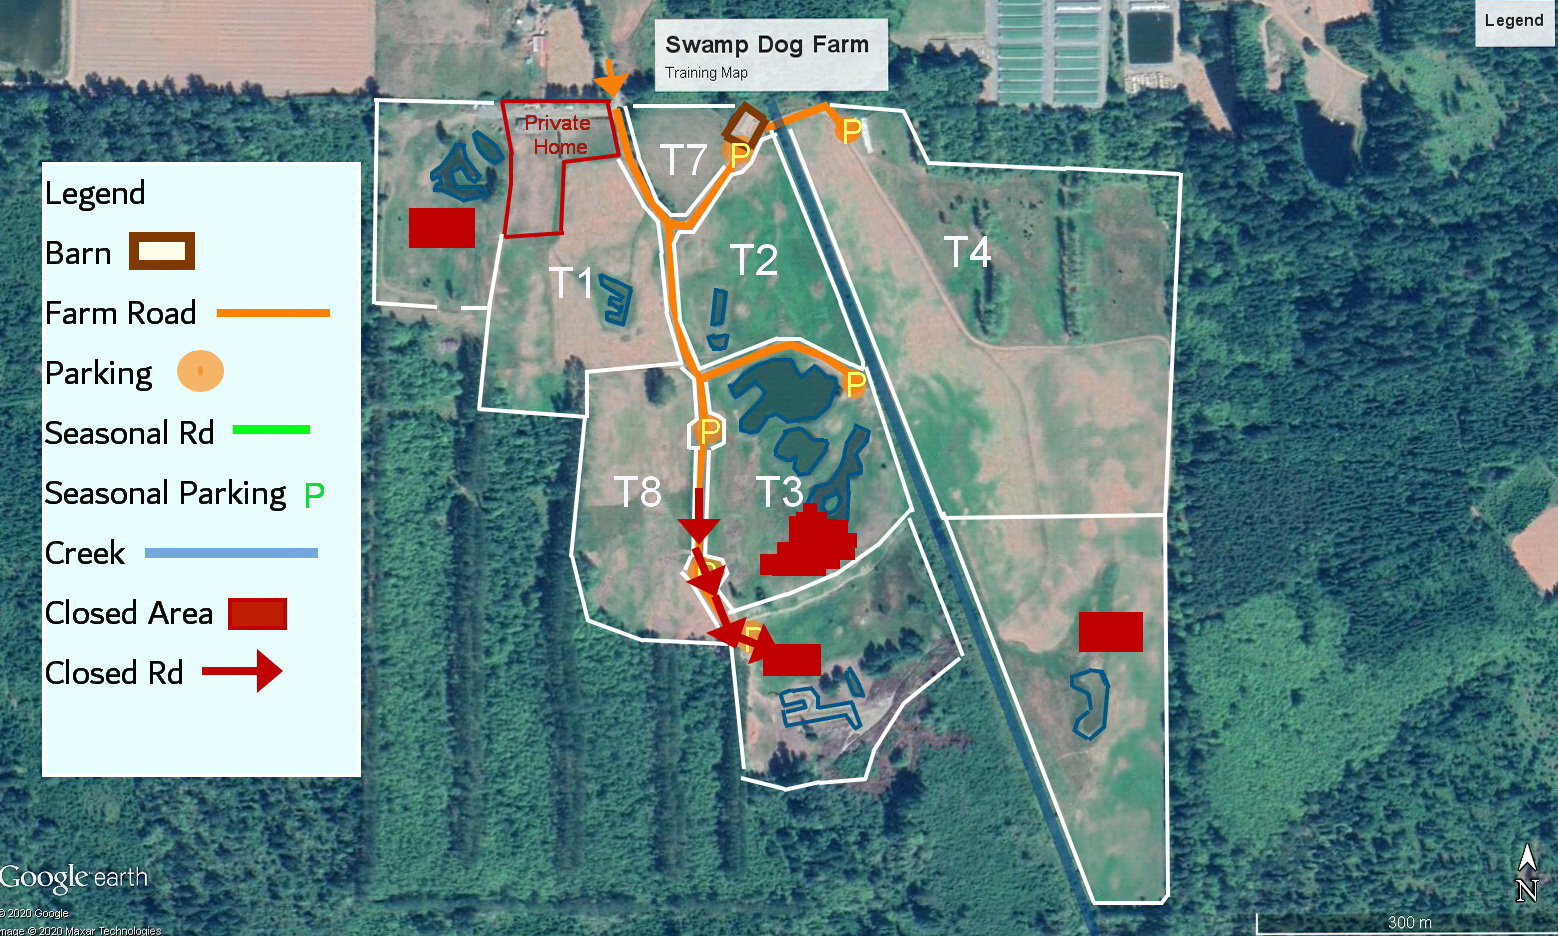 Swamp Dog Farm Winter Training Map2020.j